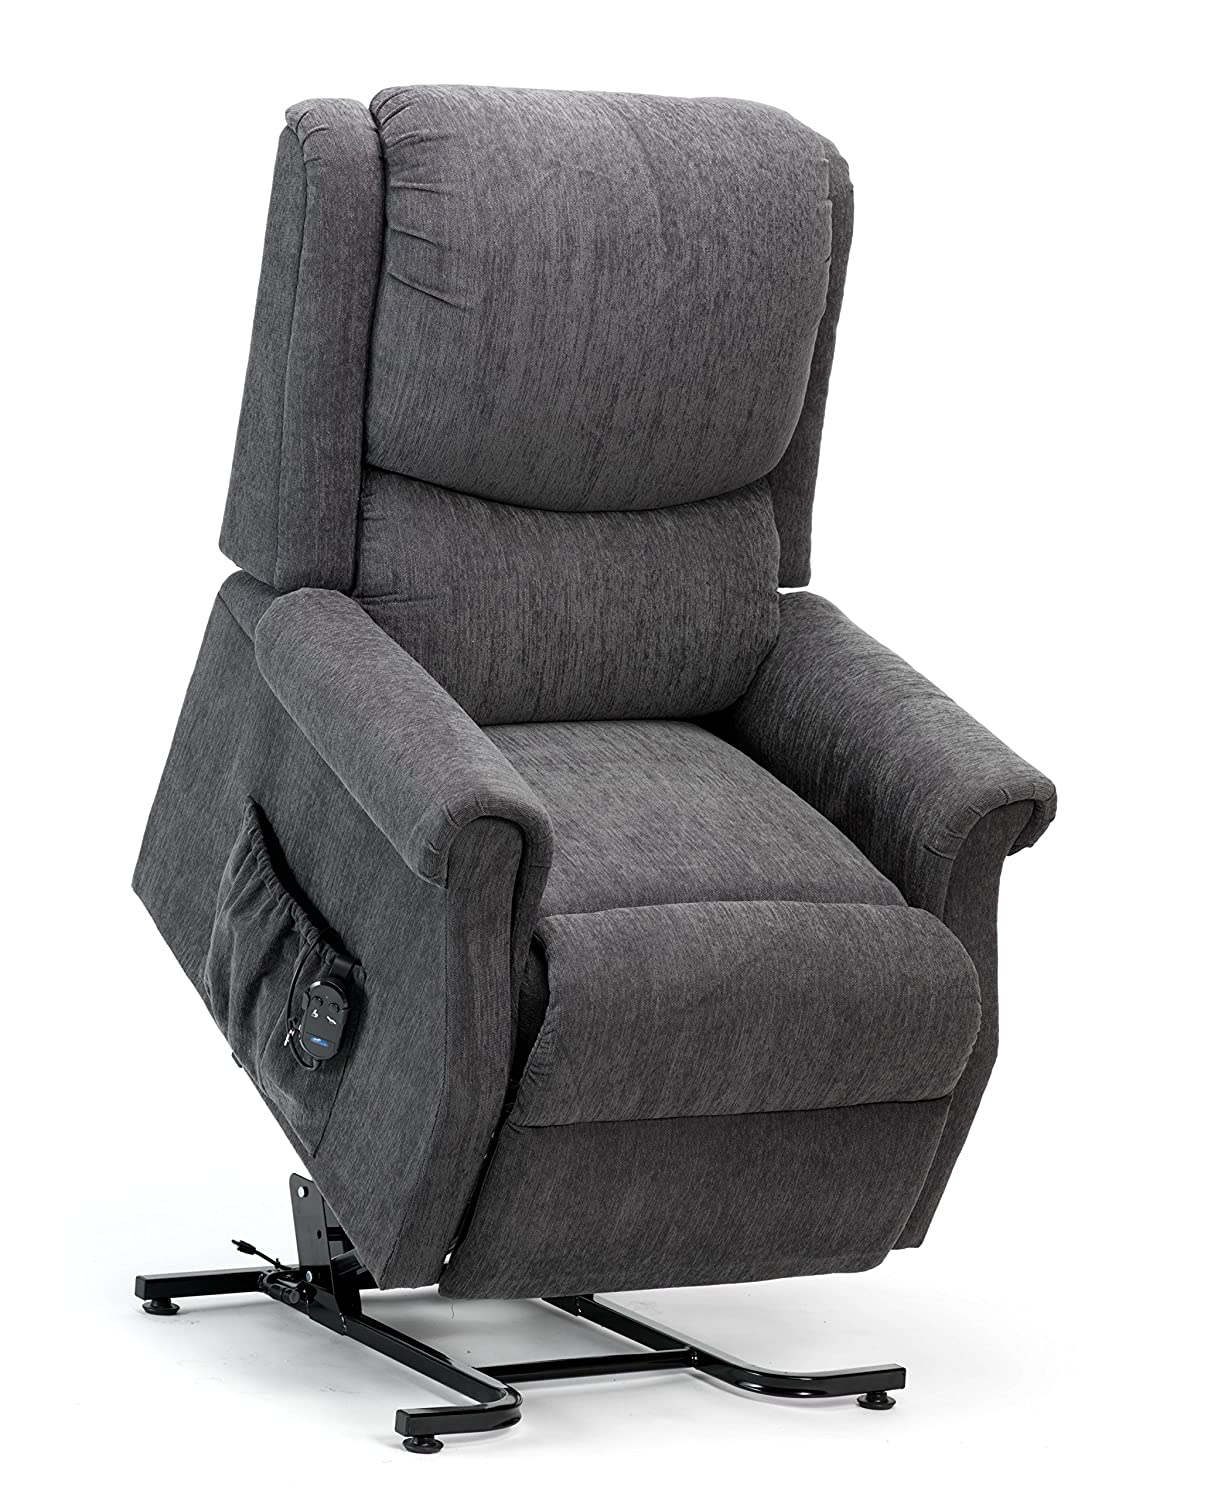 recliner at orion the ikon smiths upholstery rink celebrity petite recliners manual